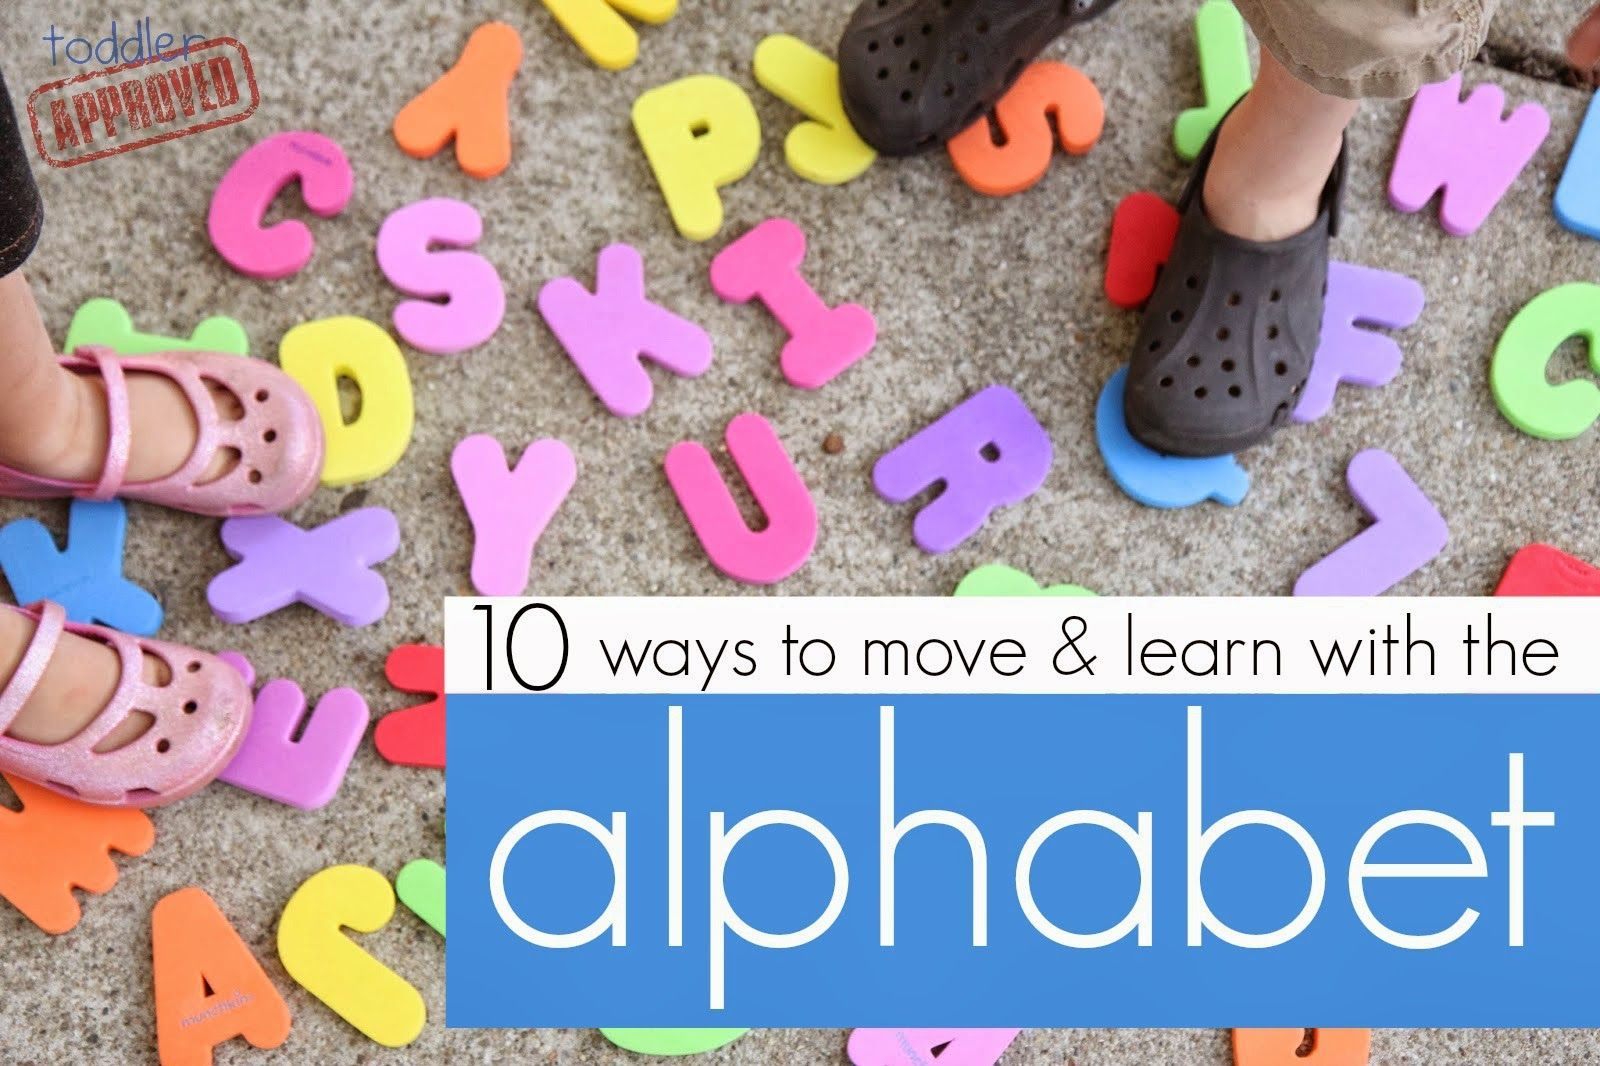 10 Ways To Move Amp Learn With The Alphabet With Images